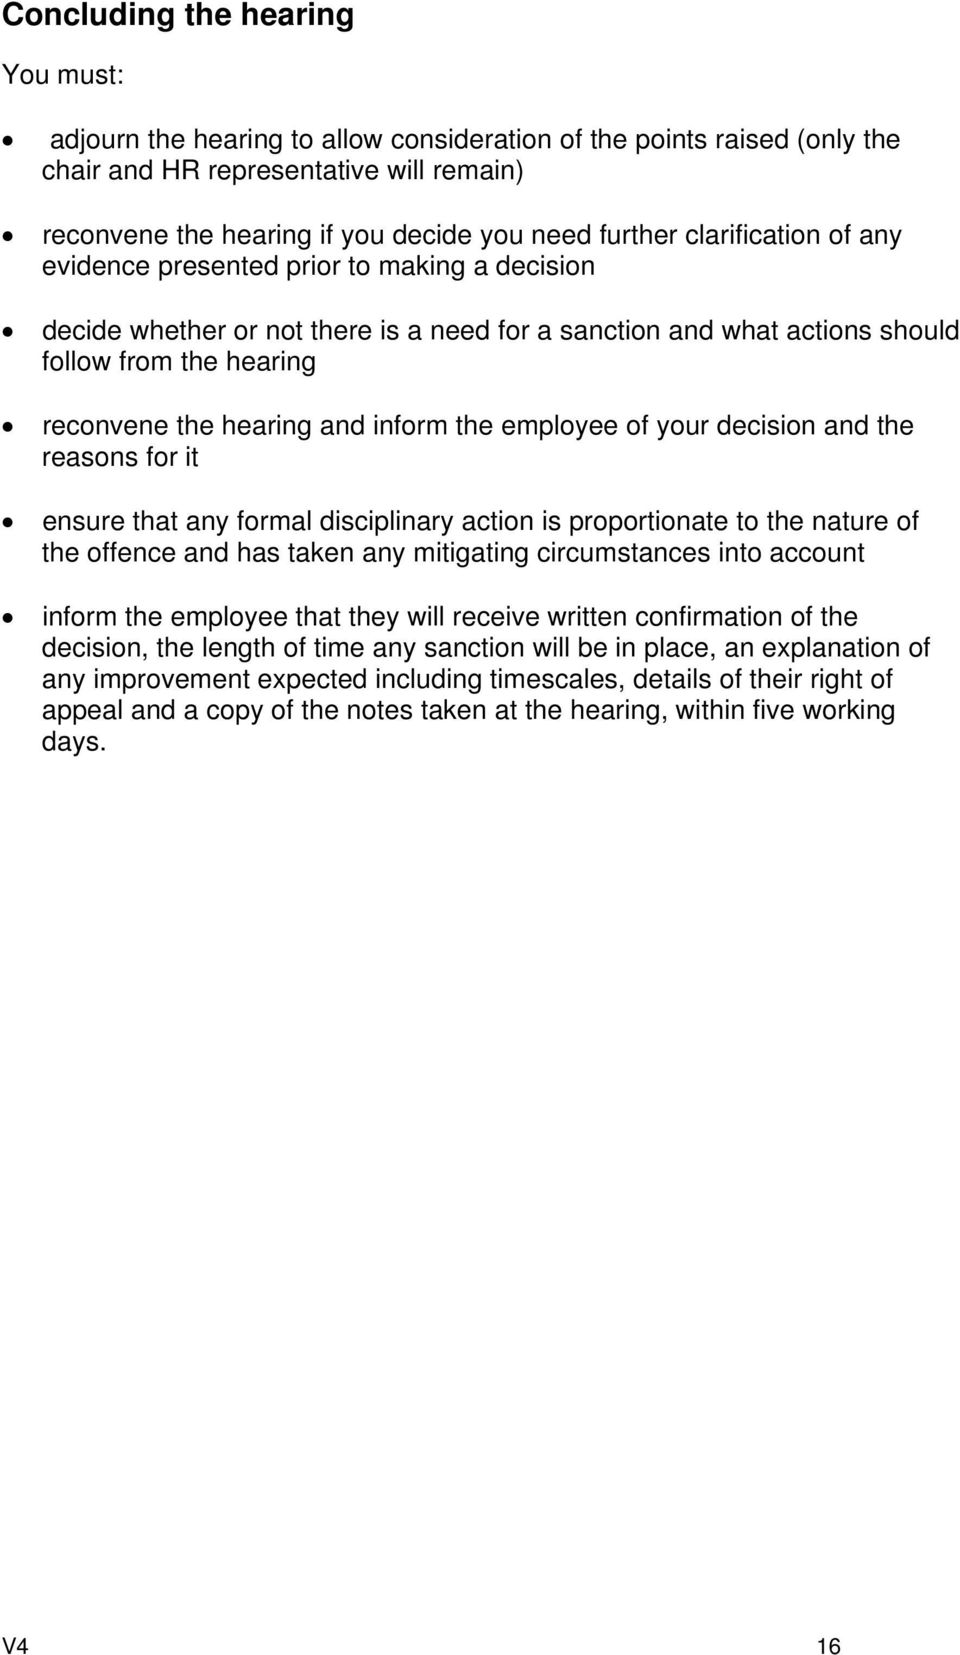 and inform the employee of your decision and the reasons for it ensure that any formal disciplinary action is proportionate to the nature of the offence and has taken any mitigating circumstances